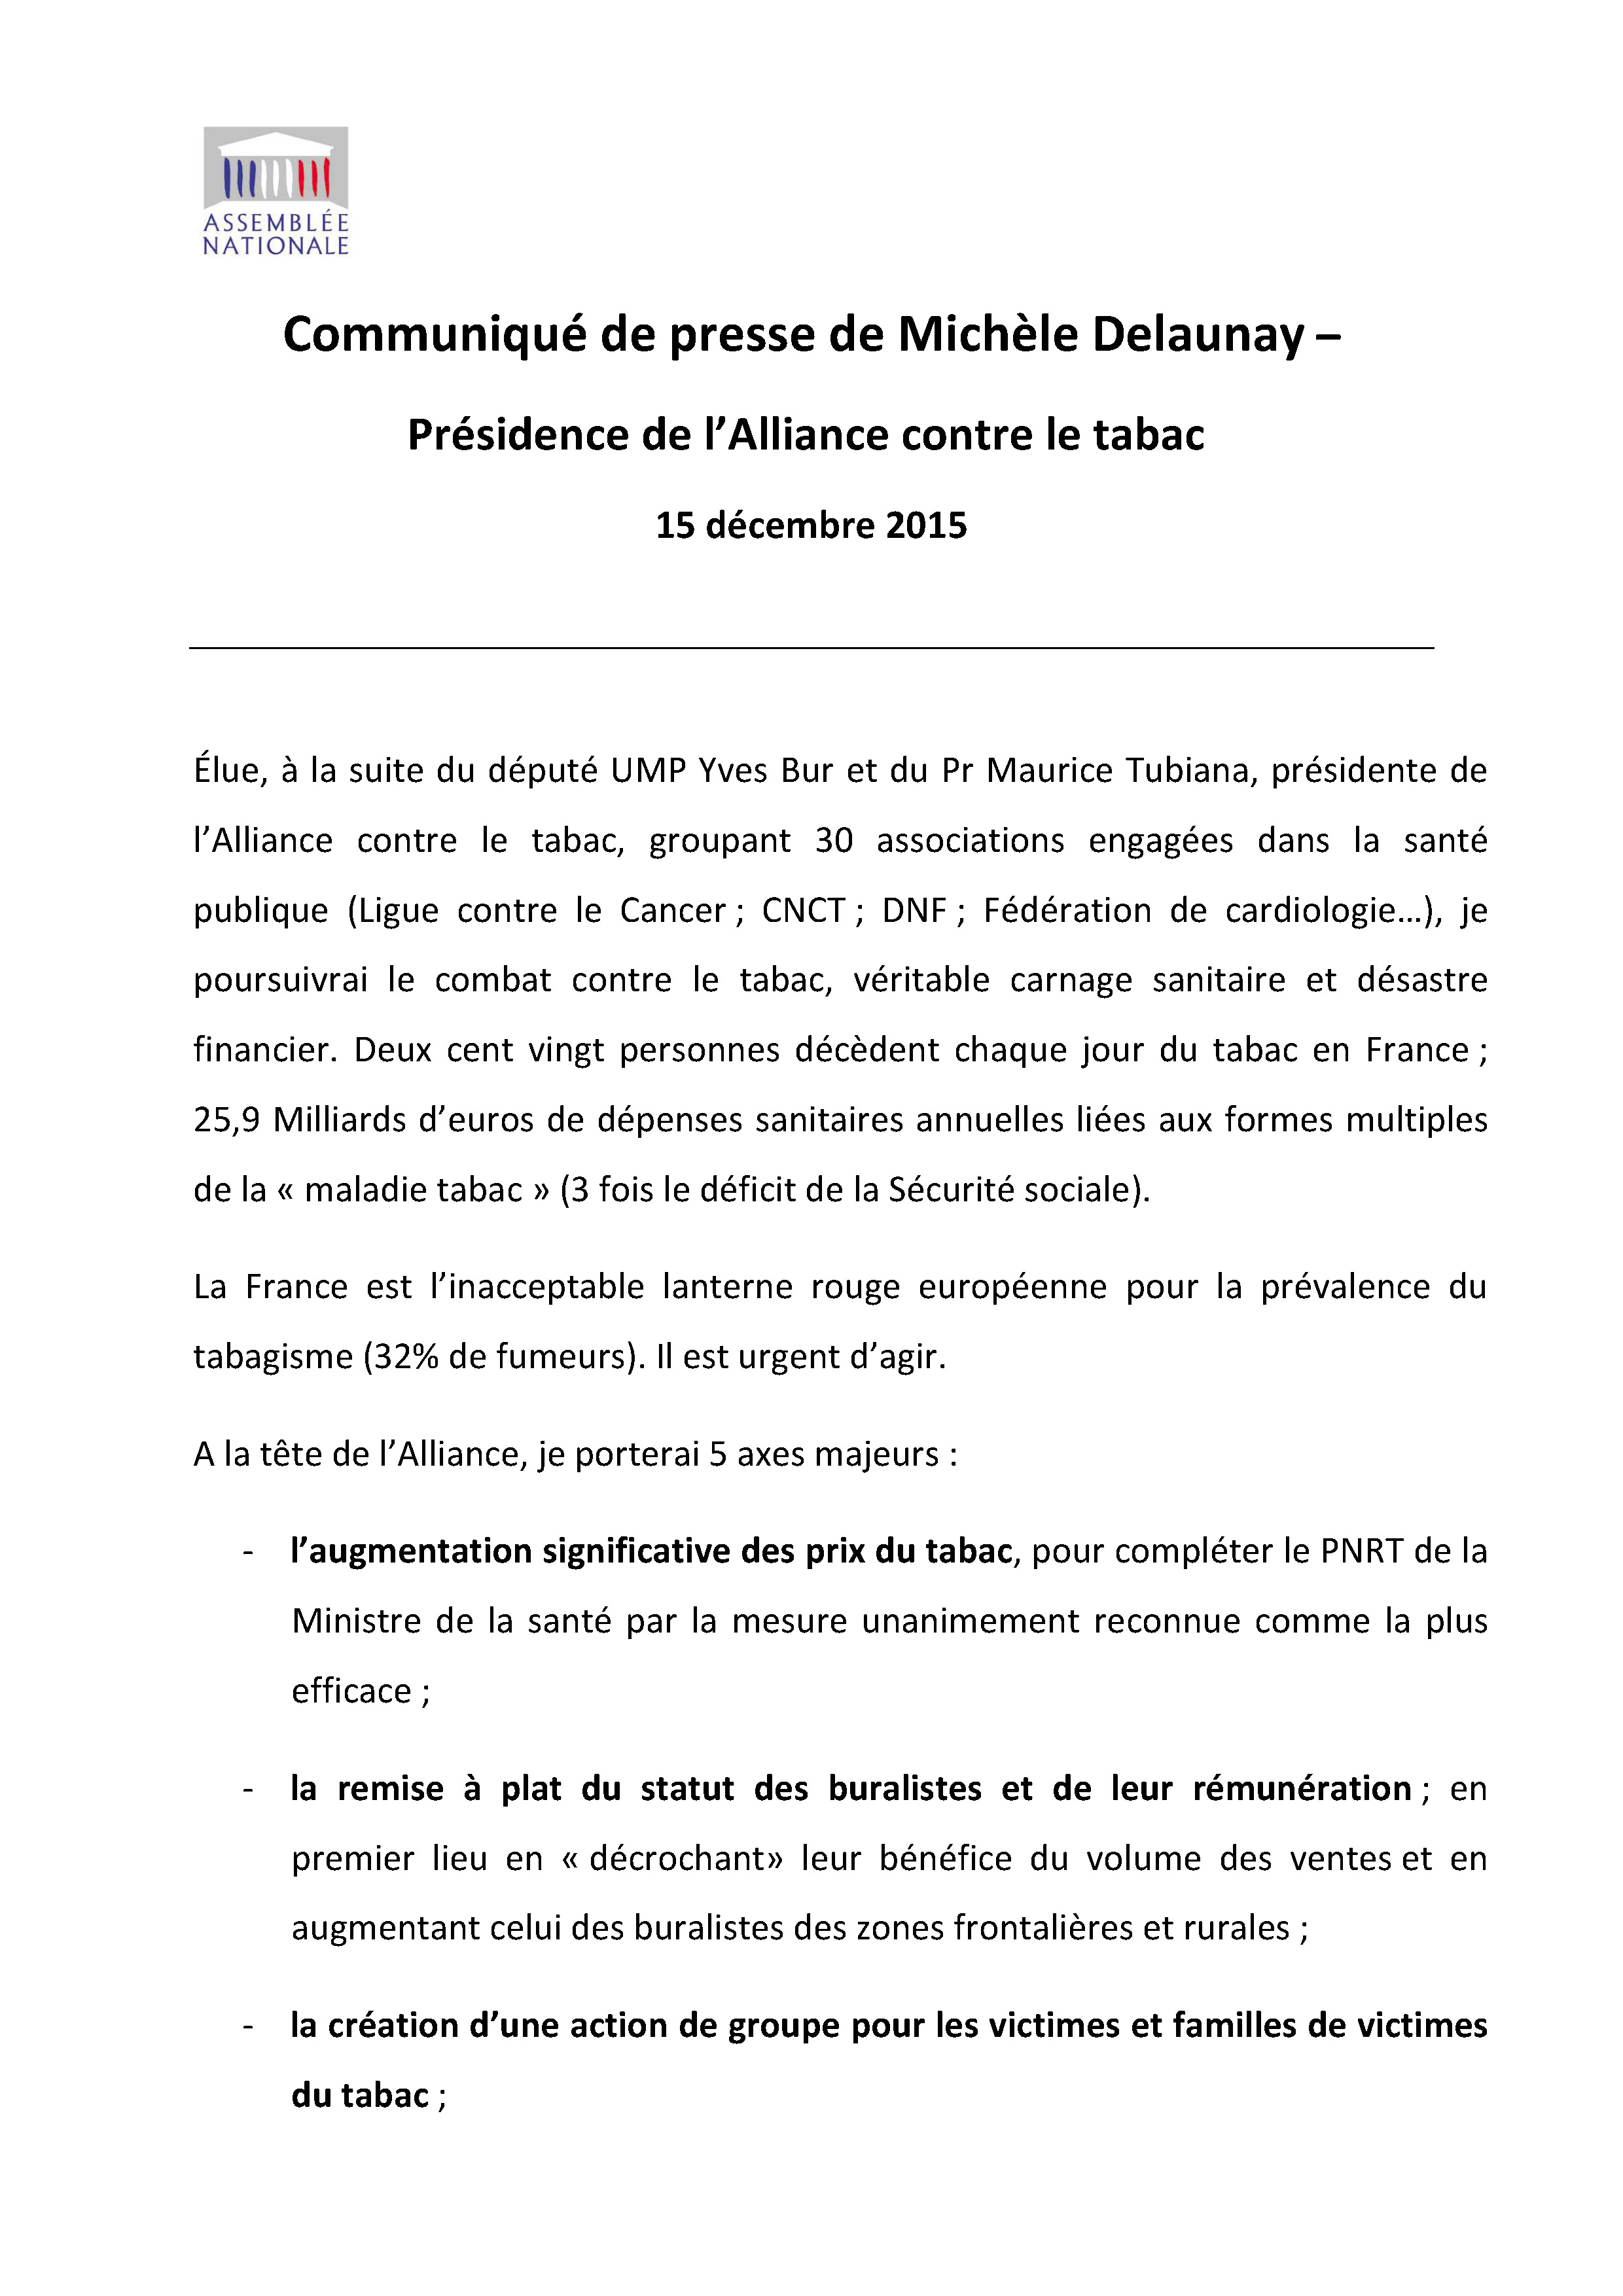 Alliance-CP-michele-delaunay-presidence-alliance-contre-le-tabac_15dec2015_Page_1.jpg